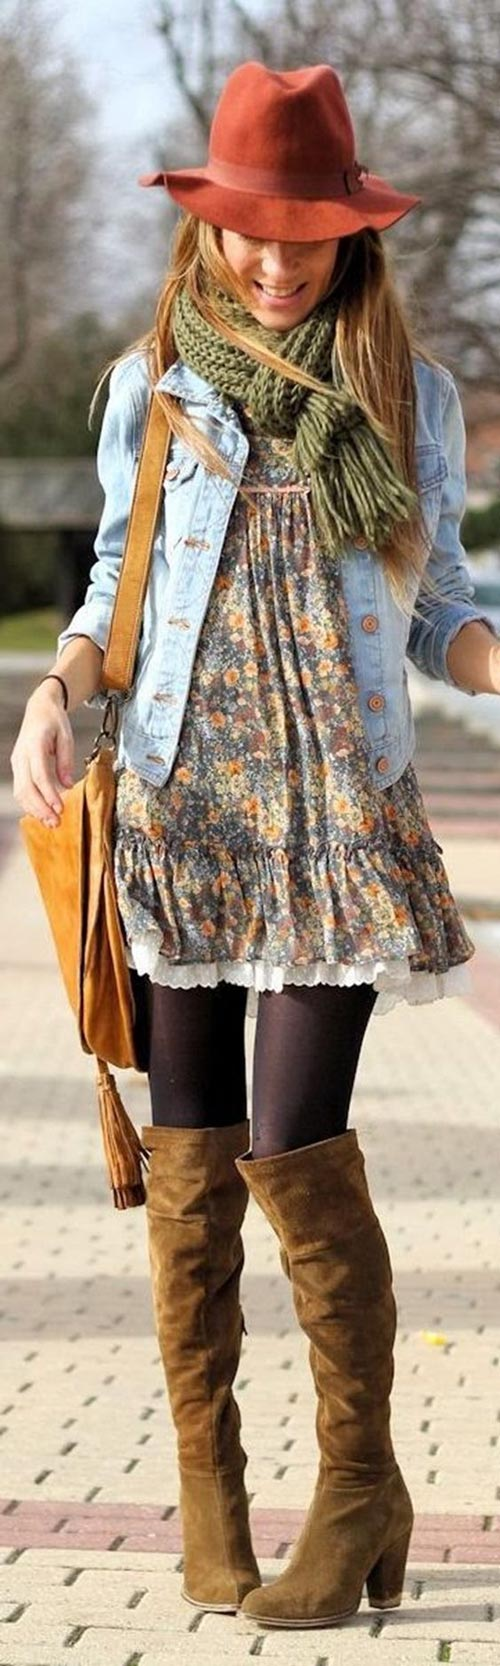 fall outfit-denim jacket